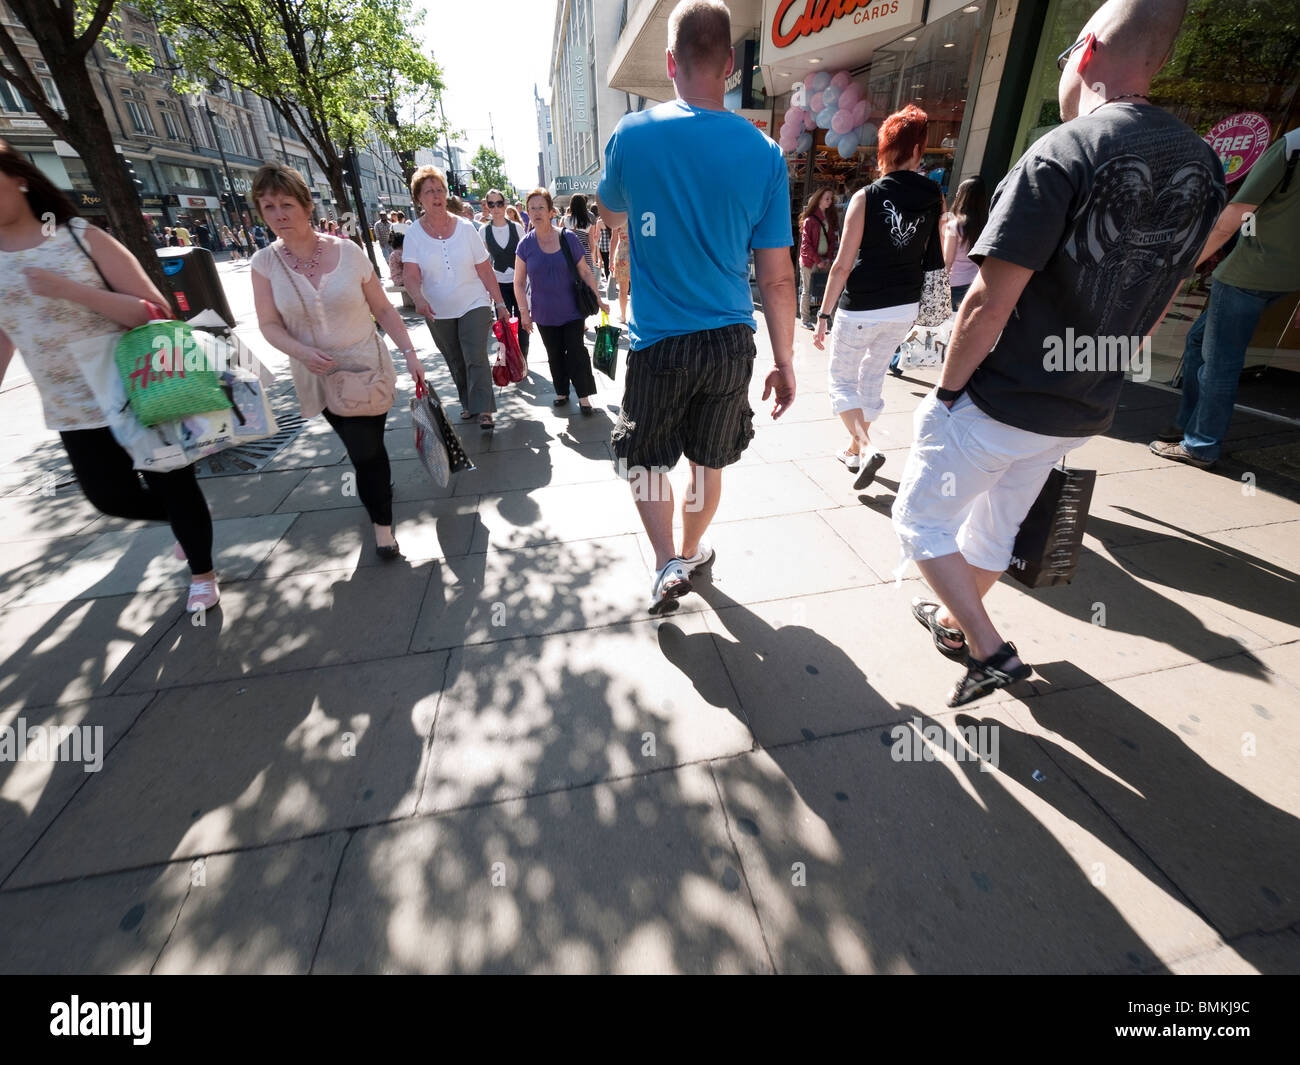 Shoppers in Oxford Street, London, England - Stock Image